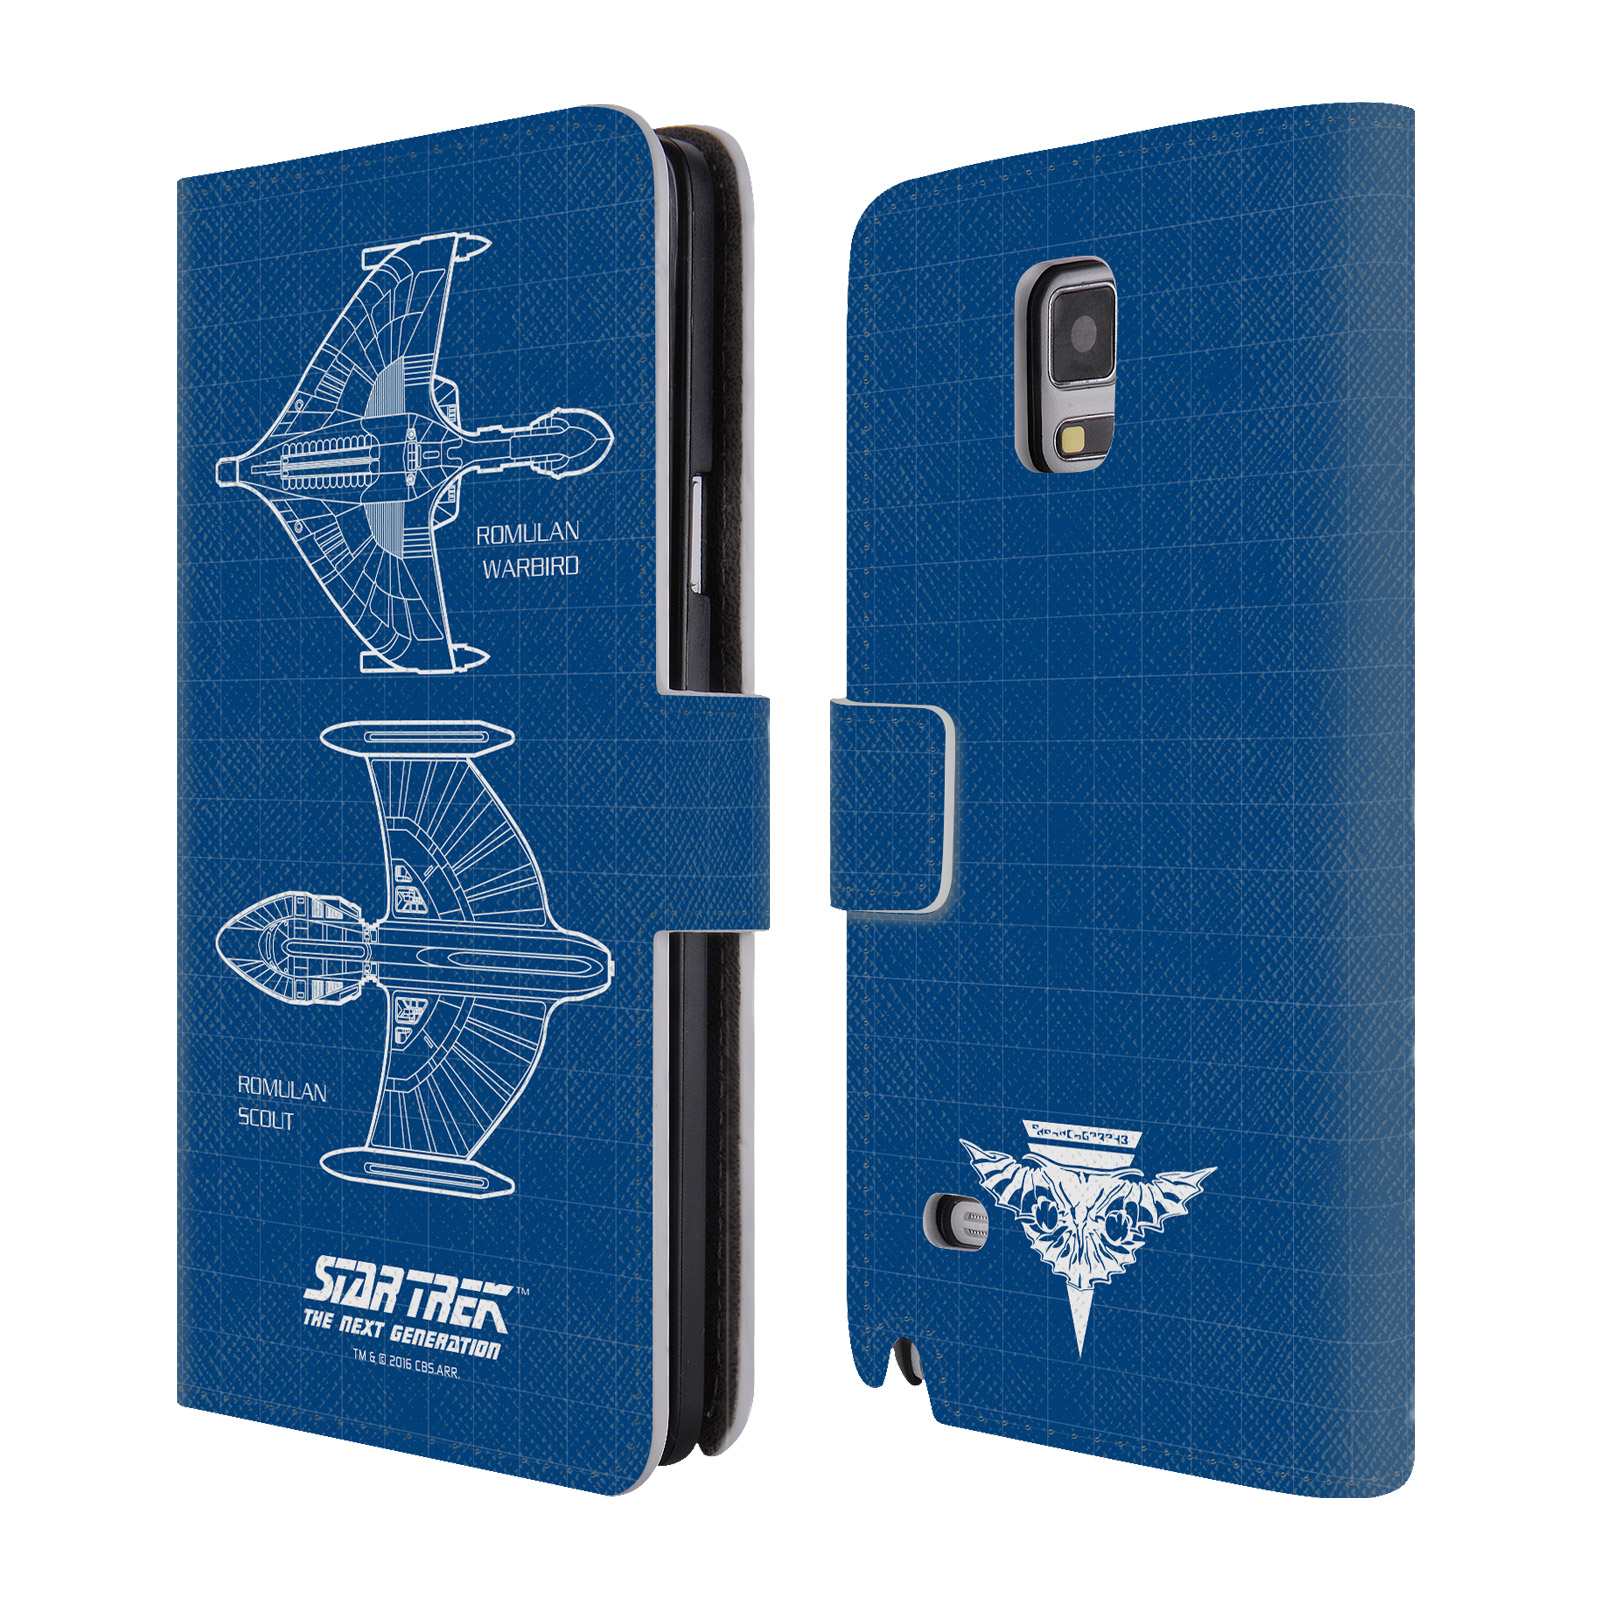 OFFICIAL STAR TREK SHIPS OF THE LINE TNG LEATHER BOOK WALLET CASE COVER FOR SAMSUNG PHONES 1